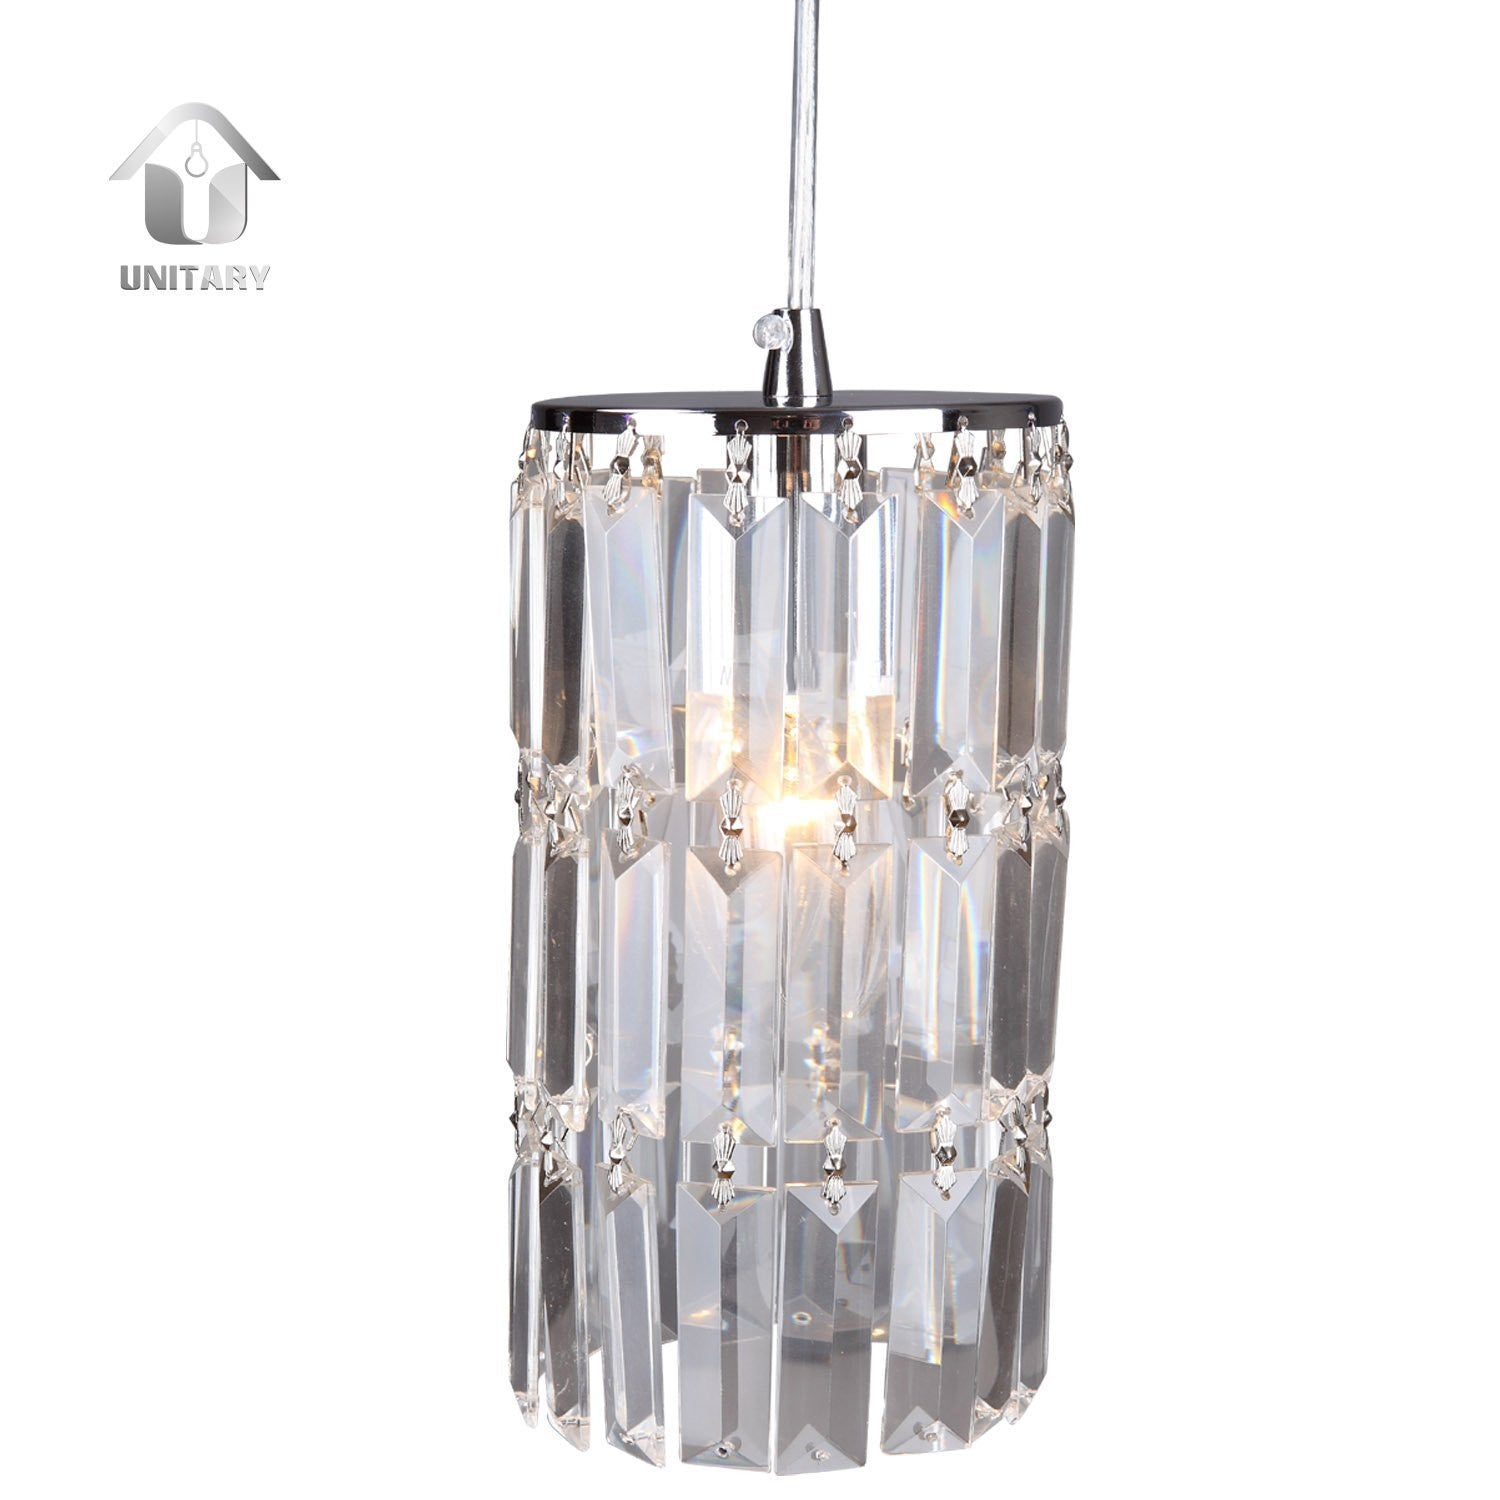 UNITARY BRAND Modern Crystal Mini Pendant Light Max 40W With 1 Light Chrome Finish